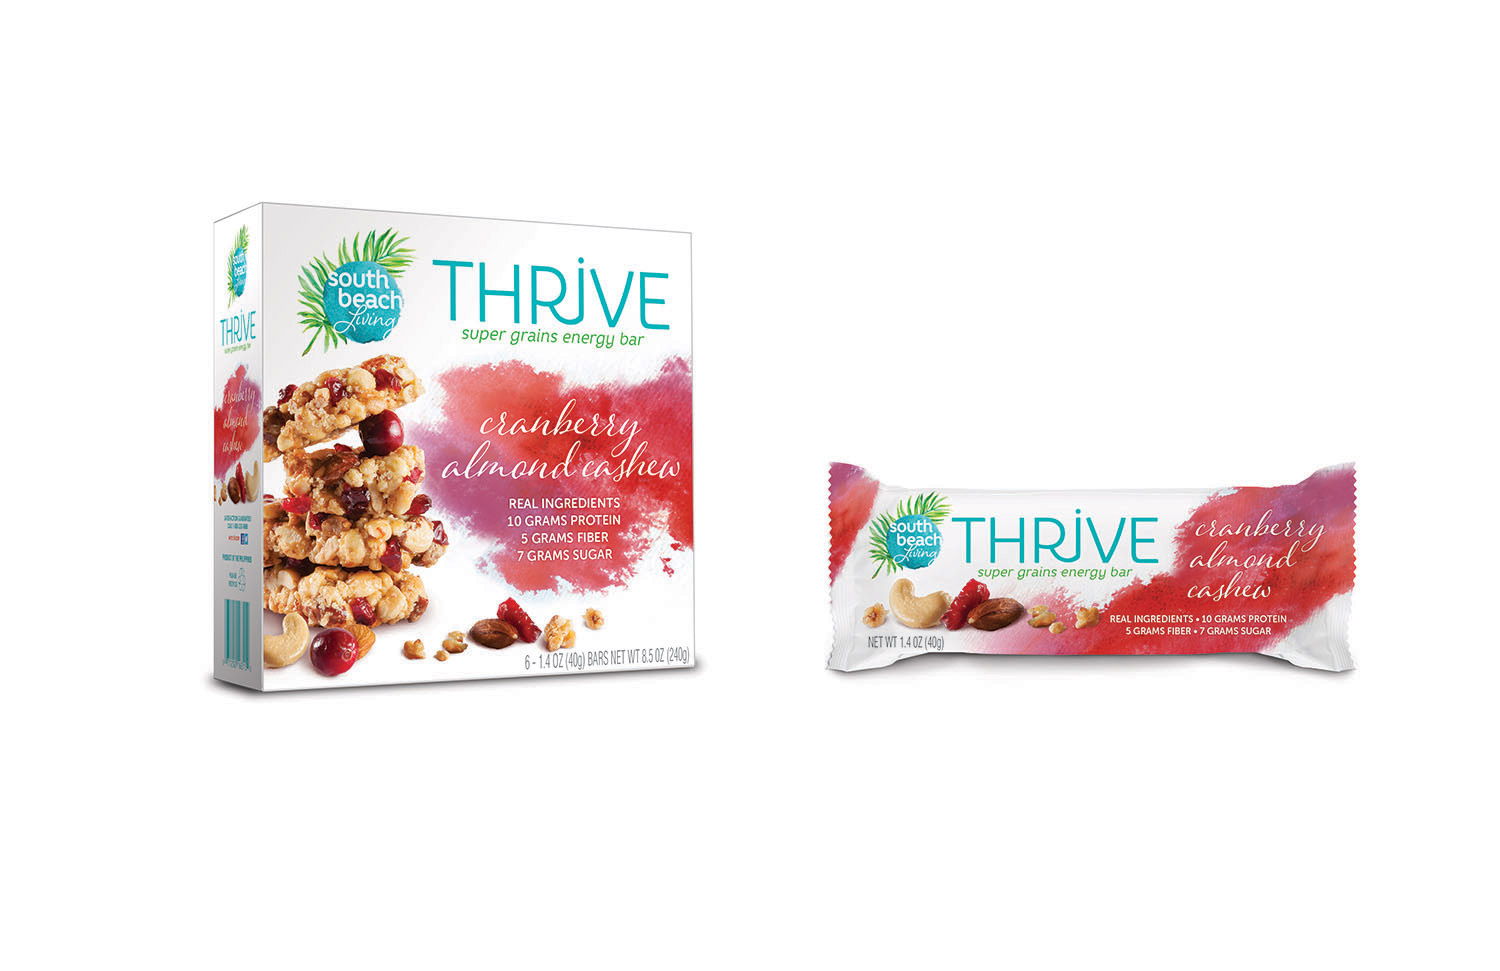 South Beach Living: Thrive Packaging Concept